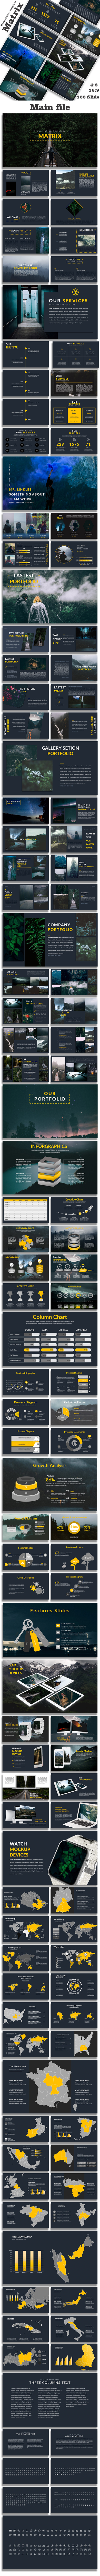 Matrix - Creative PowerPoint Template - Creative PowerPoint Templates